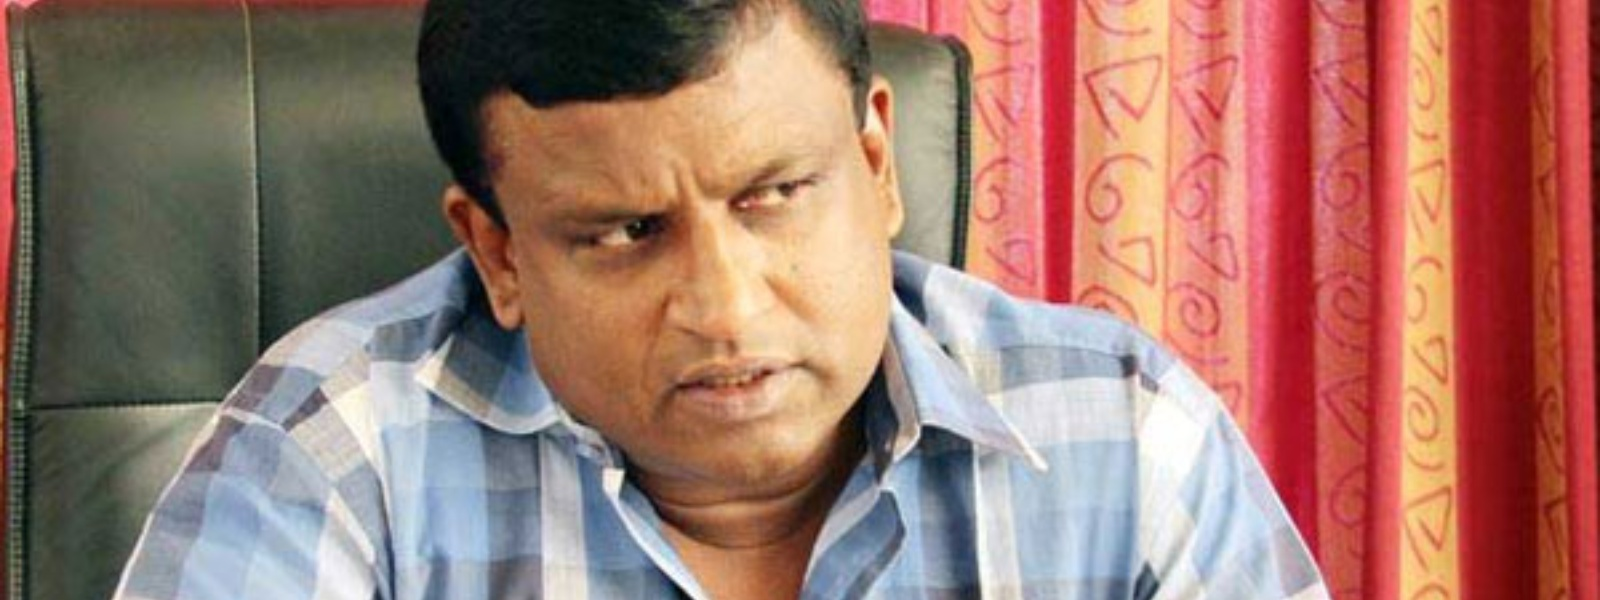 Mayor of Hambantota sentenced to 5 years in prison